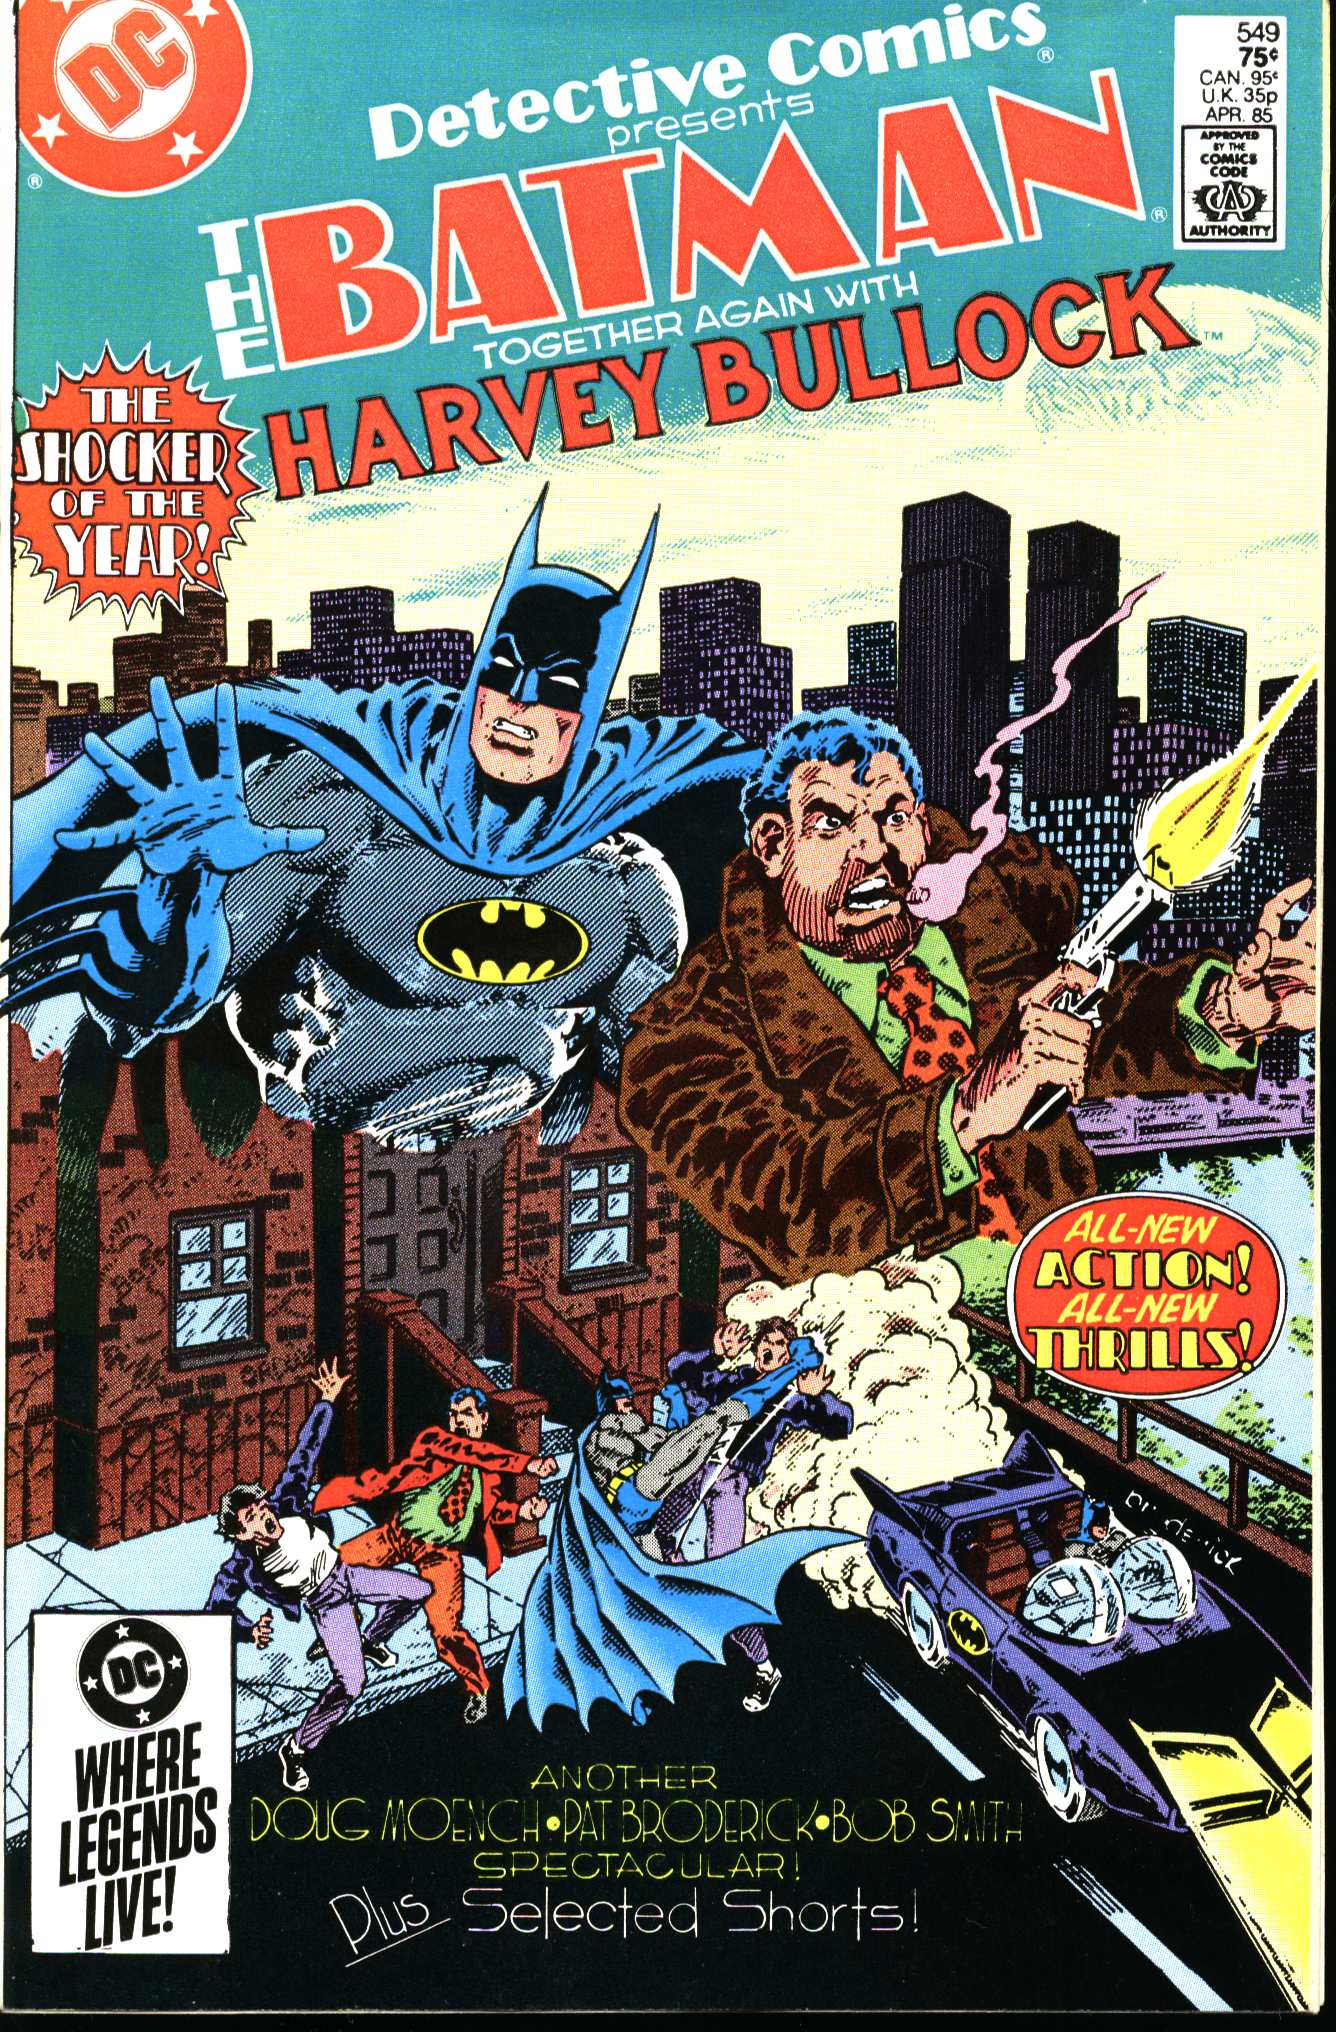 Detective Comics (1937) Issue #549 Page 1